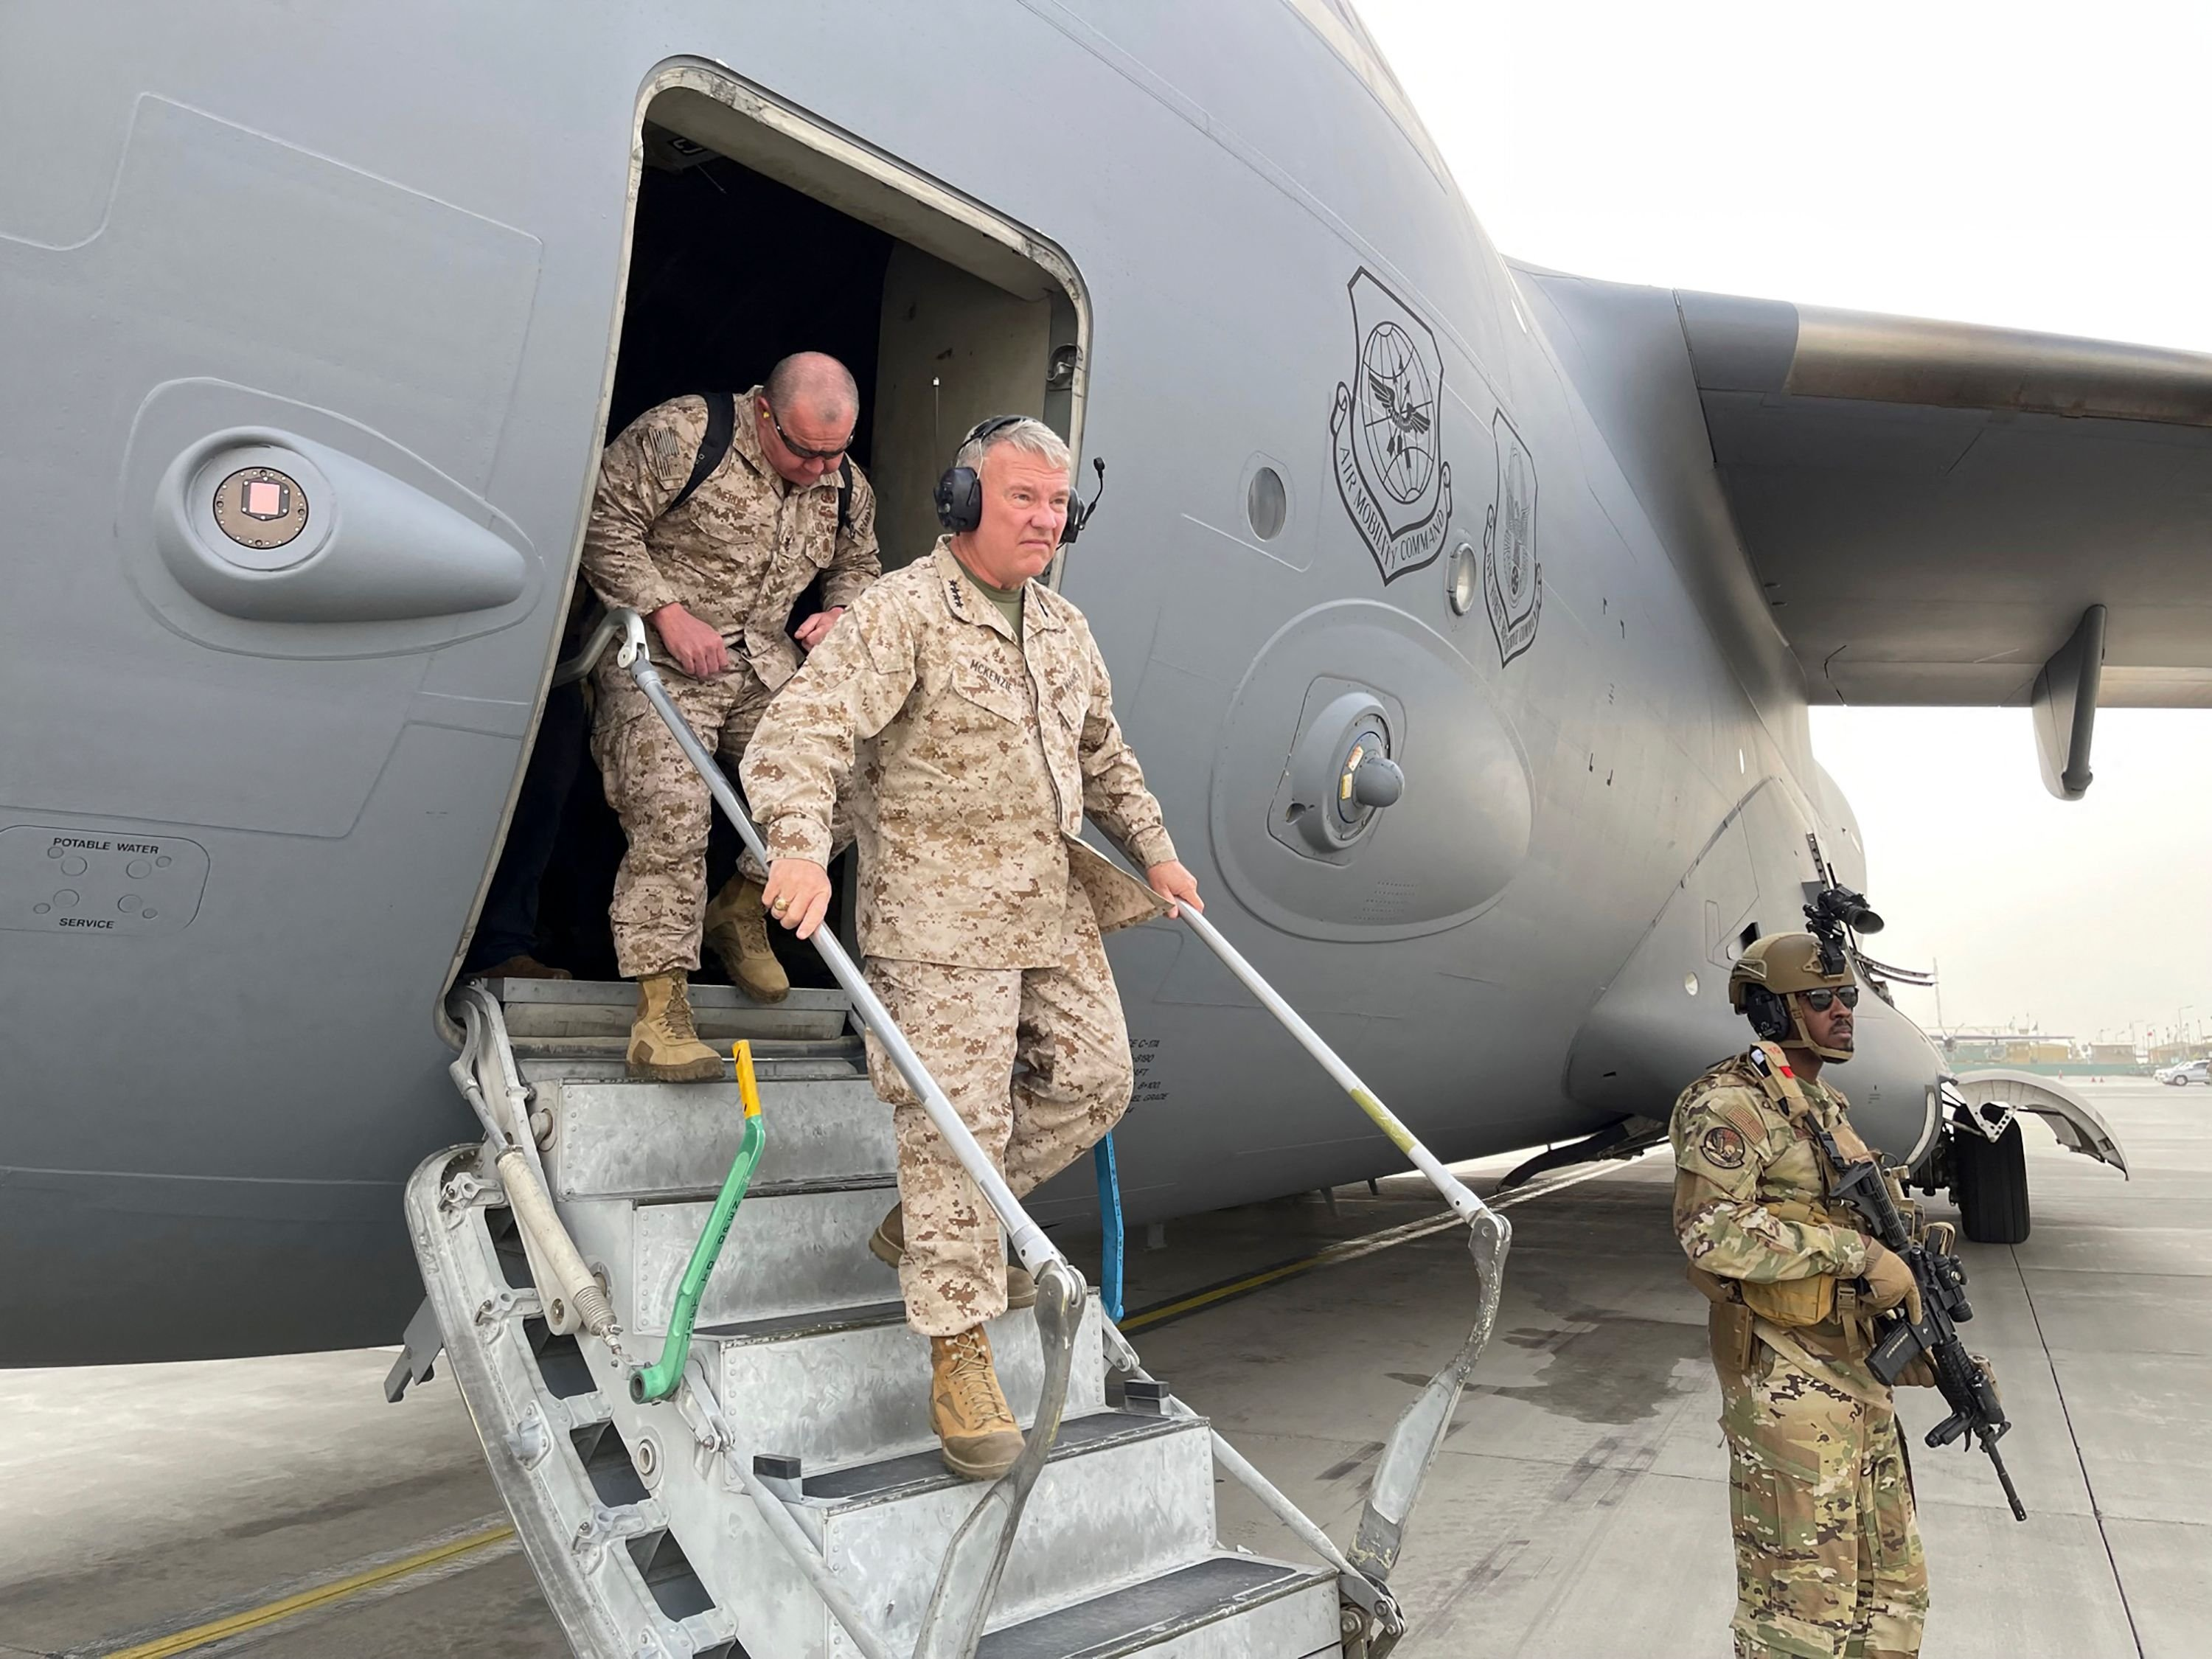 U.S. Marine Corps General Frank McKenzie, Commander of the U.S. Central Command, upon arrival at Hamid Karzai International Airport in Kabul, Afghanistan, August 17, 2021 (AFP Photo)